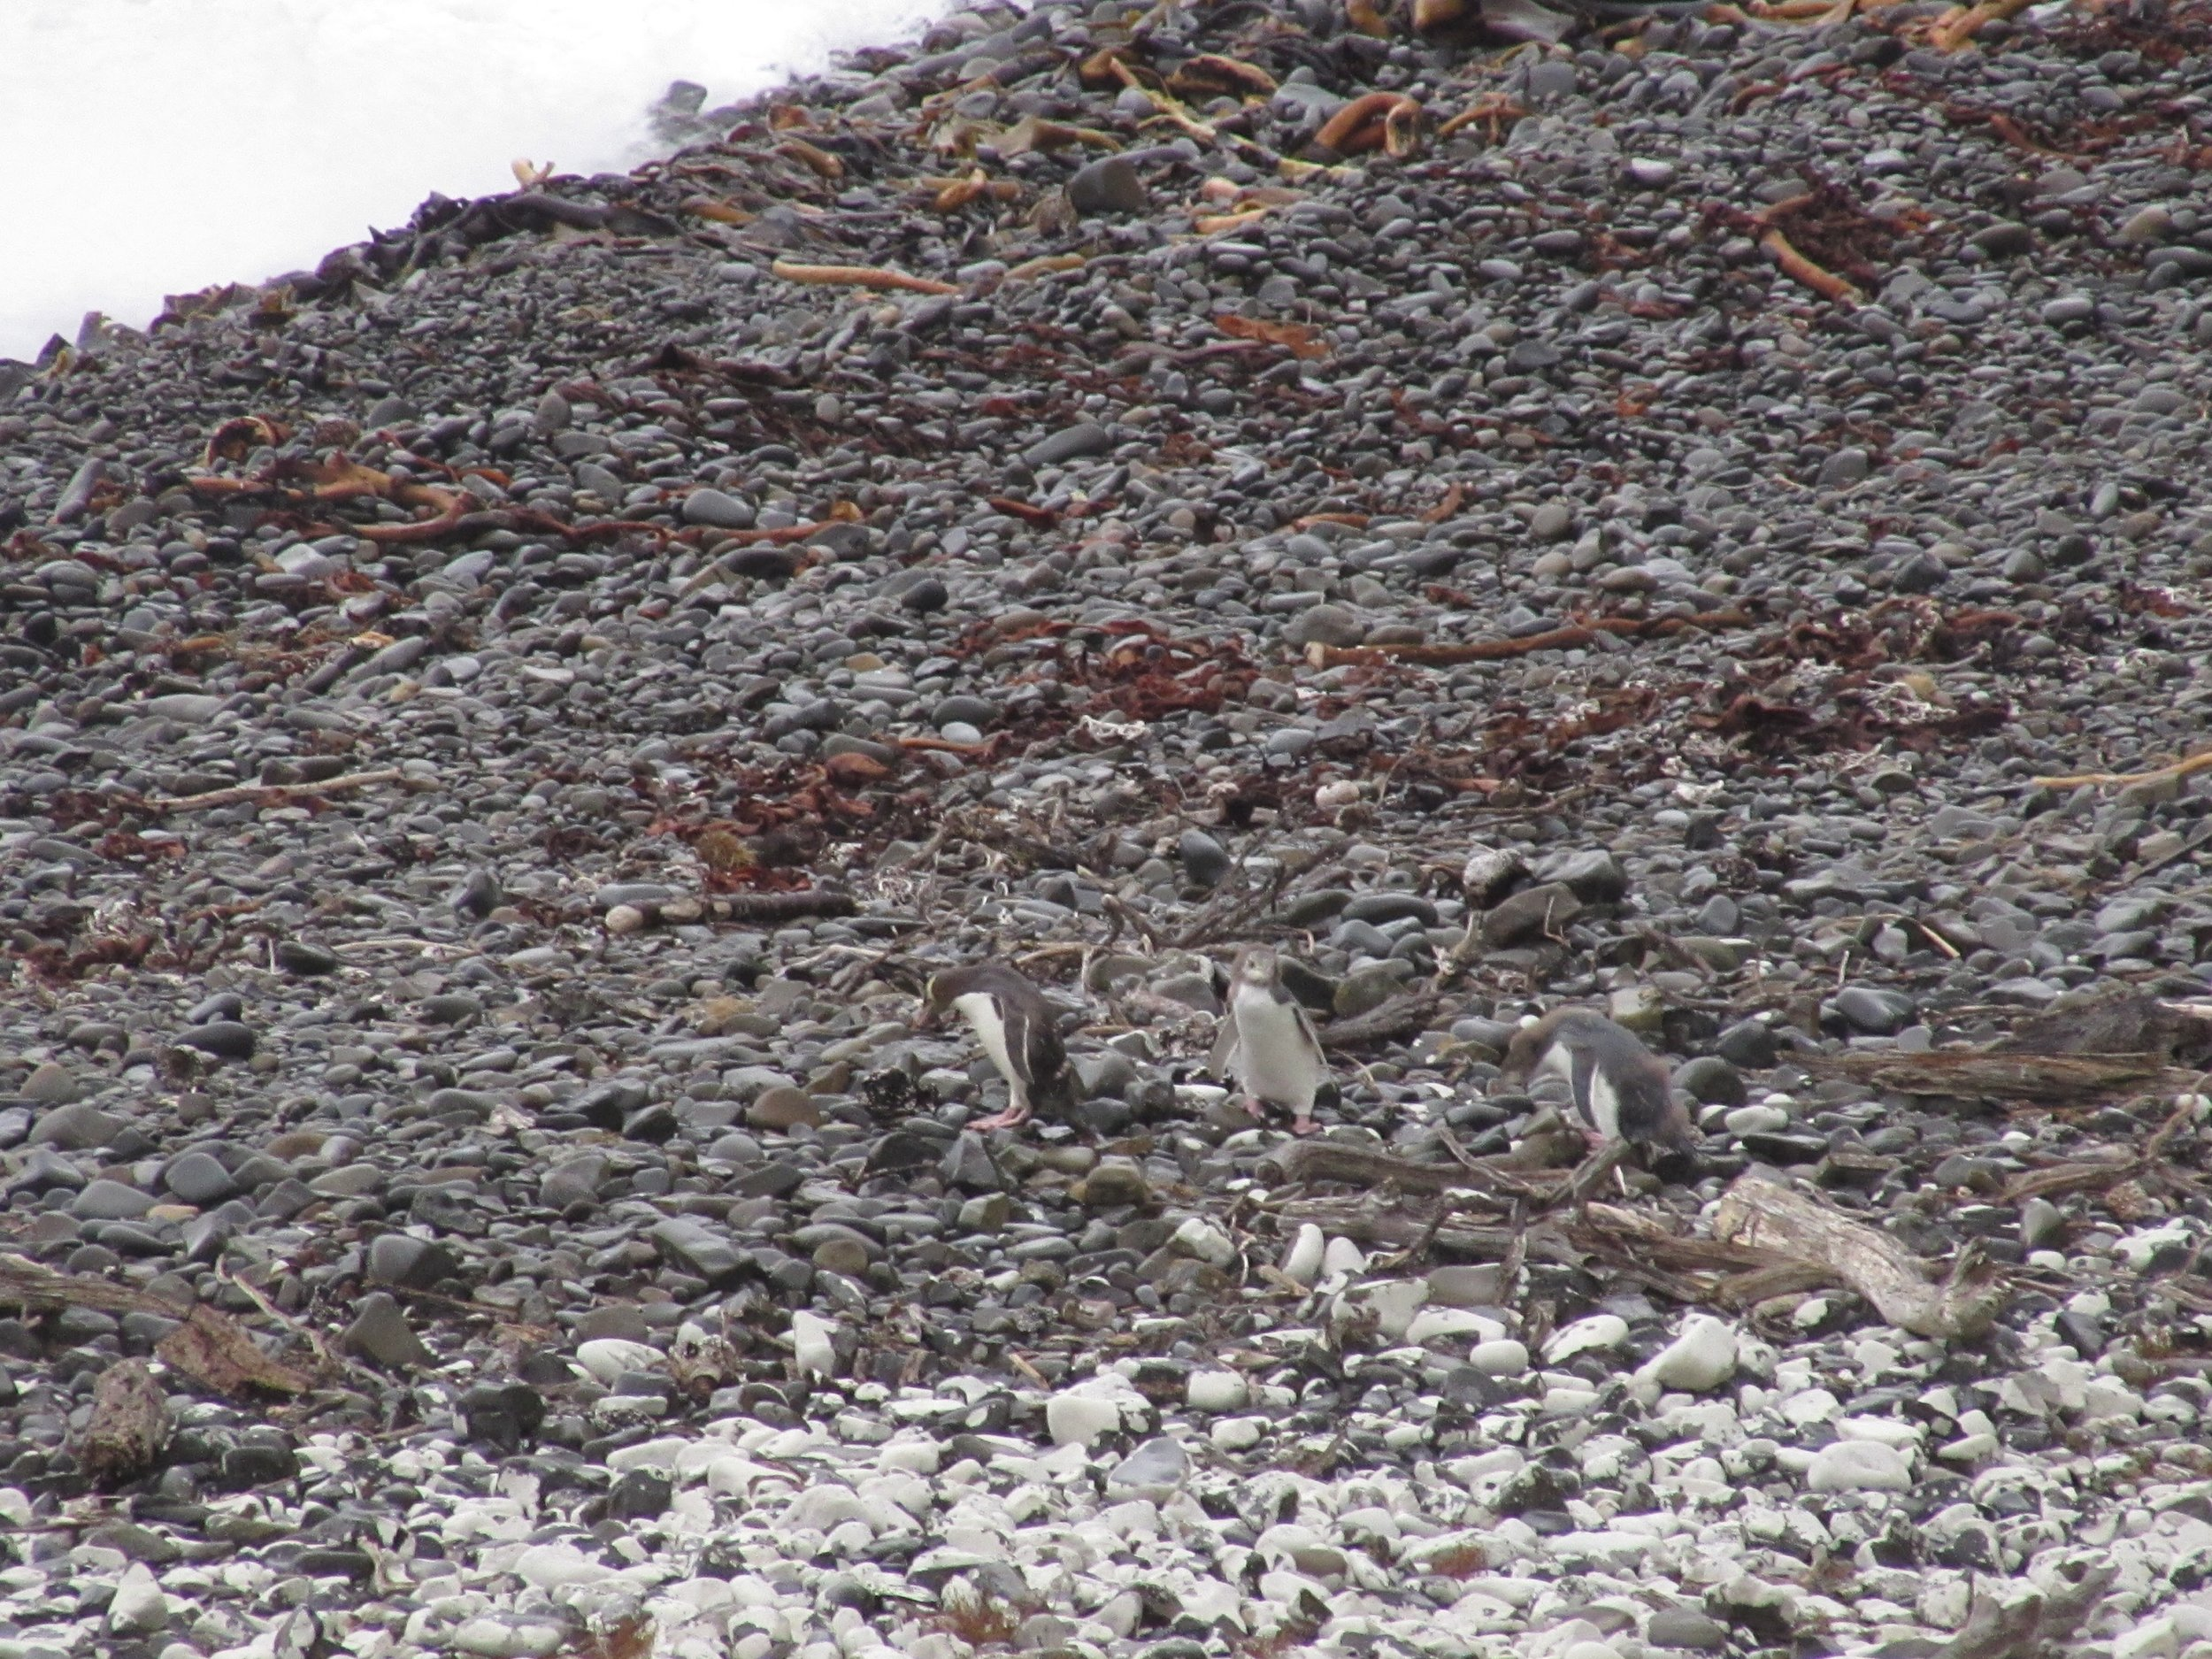 yellow-eyed penguins blending in with the rocks in the catlins nz